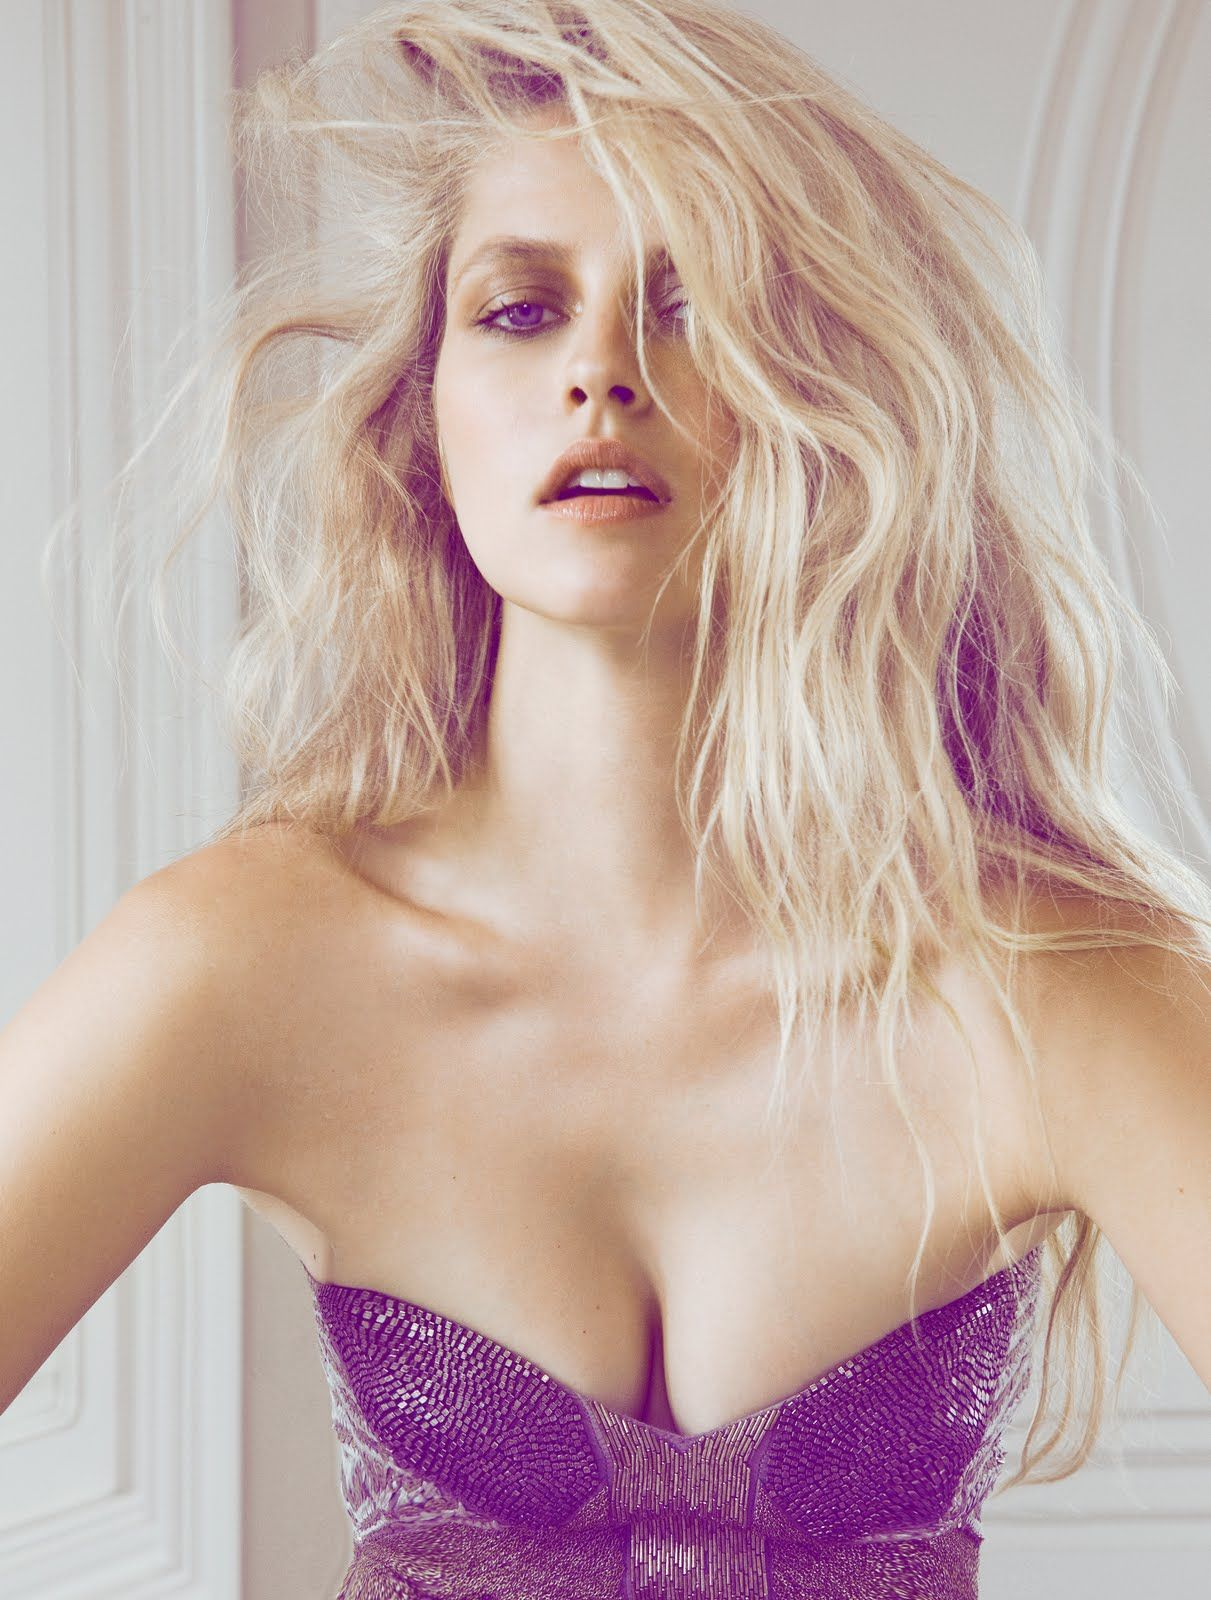 37 Hottest Teresa Palmer Pictures Will Make You Hot Under -9684